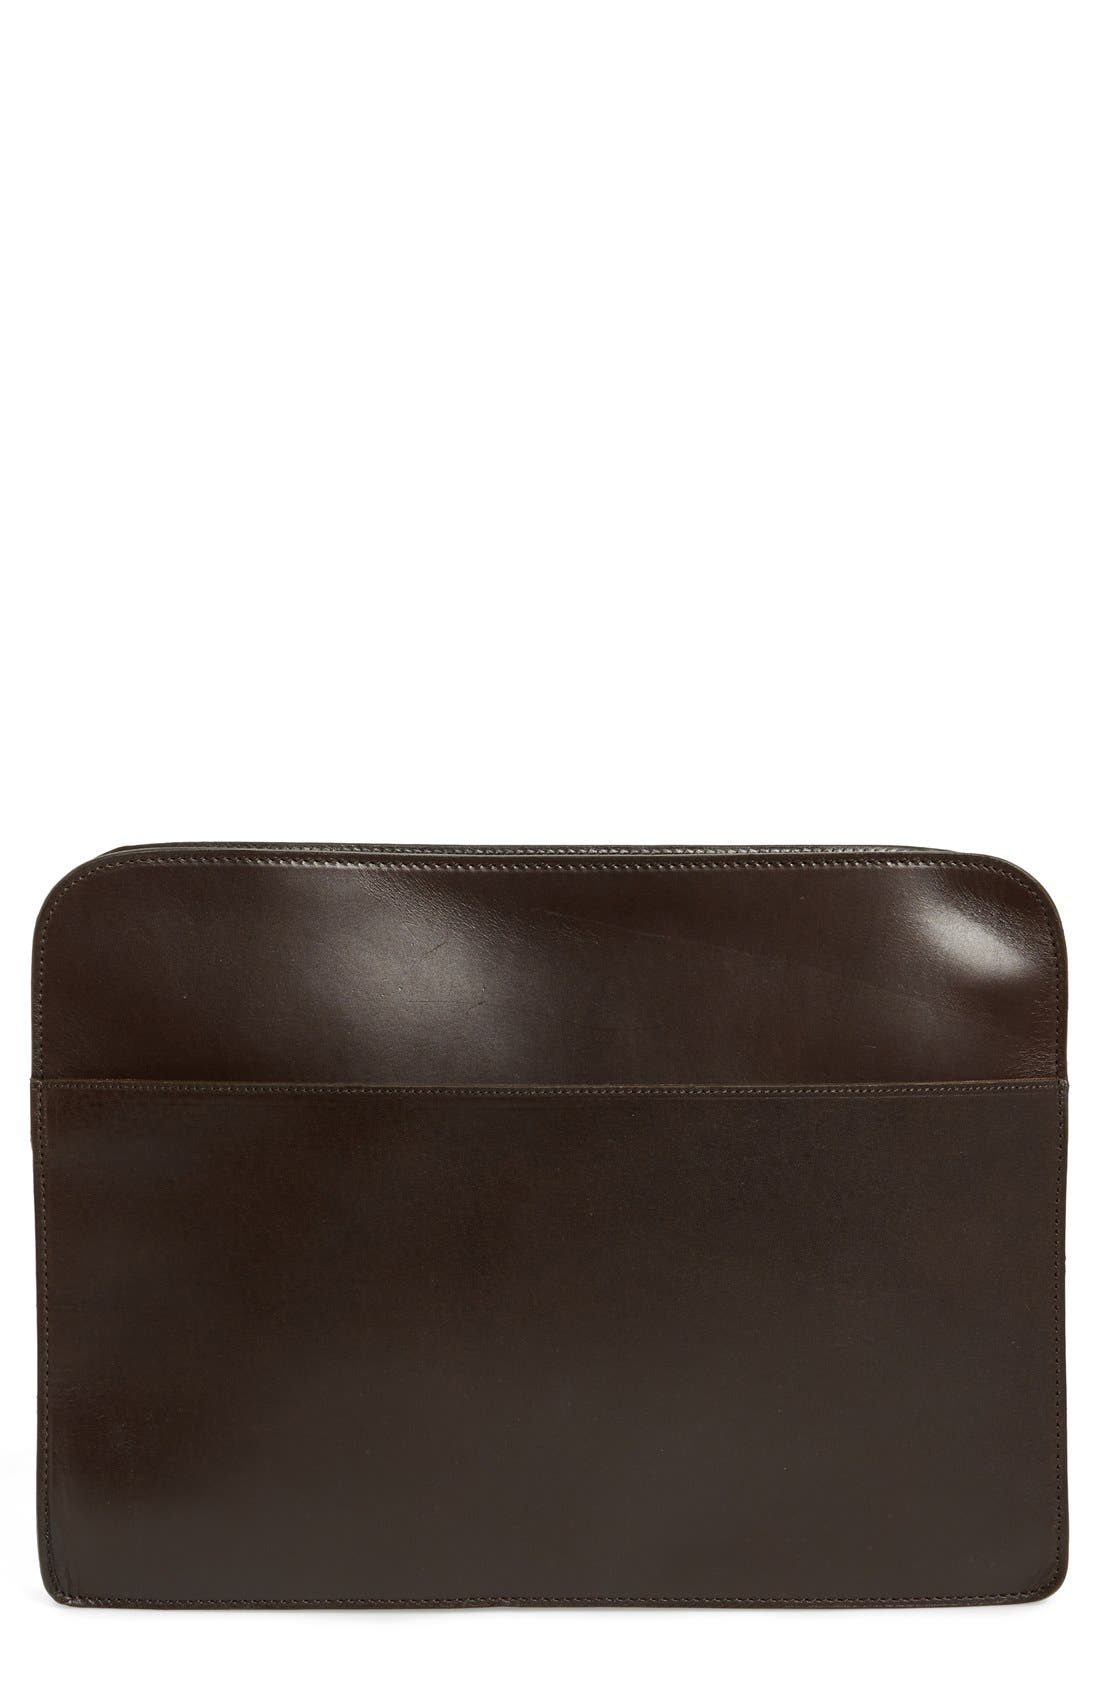 Calfskin Leather Large Zip Around Portfolio,                             Main thumbnail 1, color,                             930